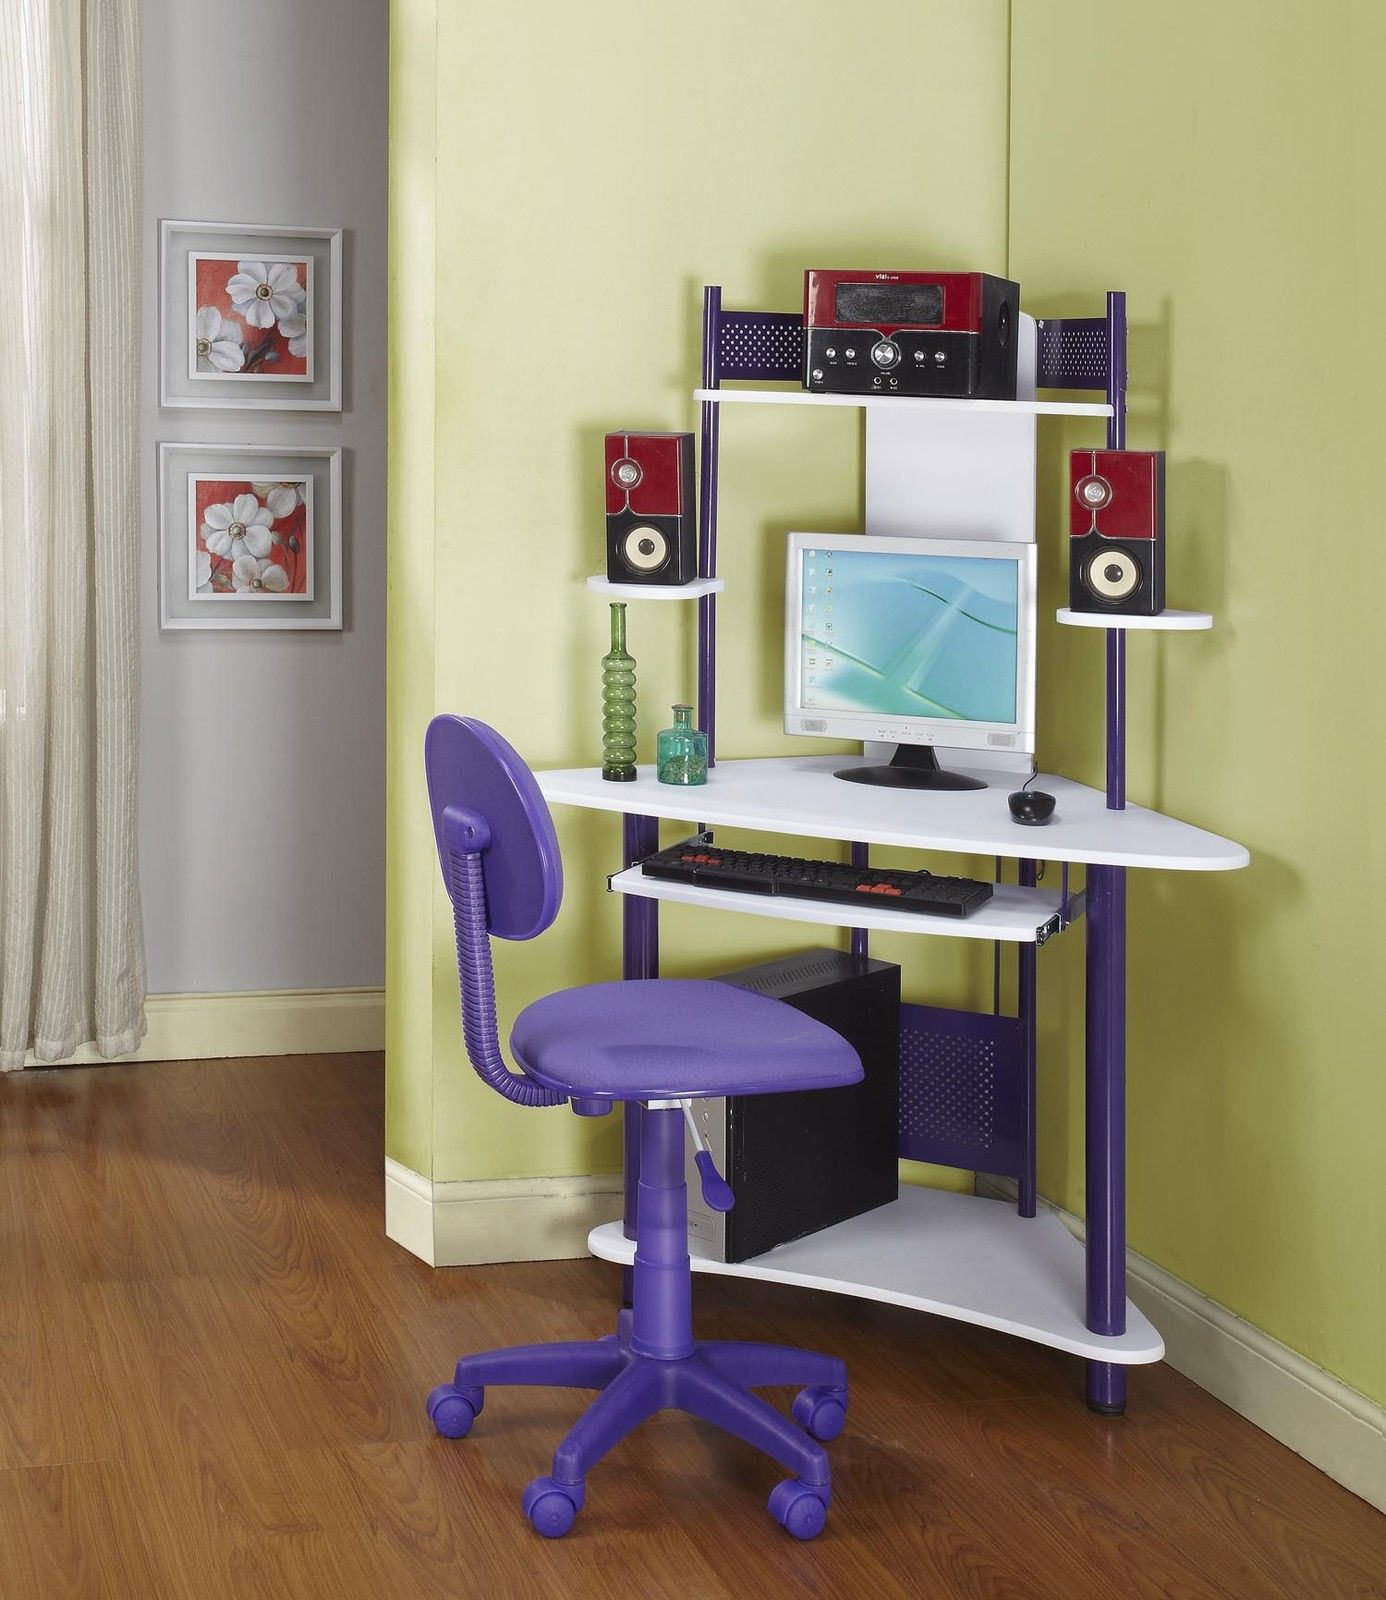 mini and colorful corner desk with under sliding panel for keyboard and lowest panel for cpu